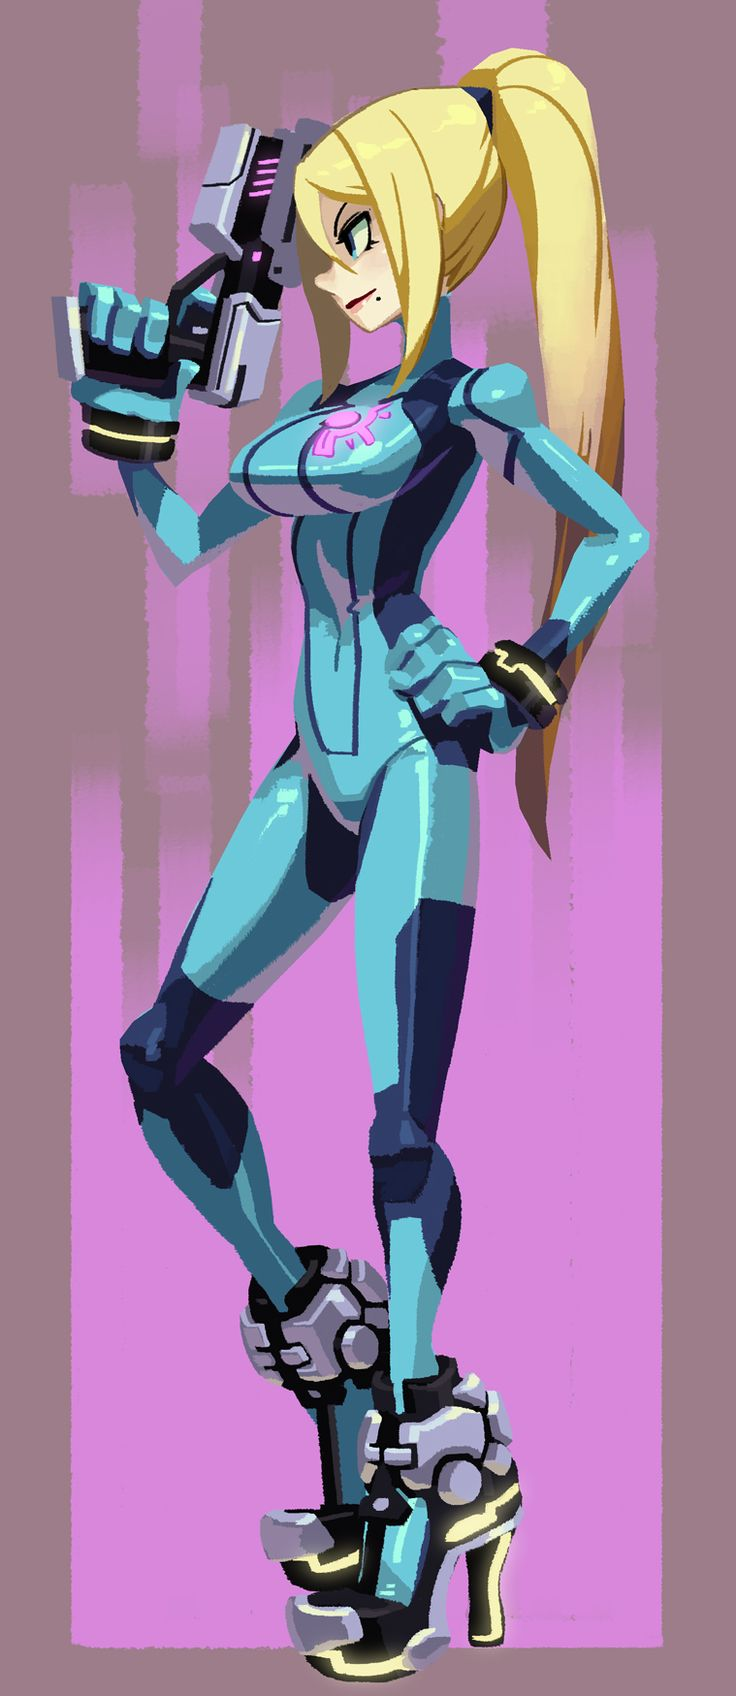 Skullgirls artist takes on his own Zero Suit Samus Aran design | #Skullgirls #Metroid